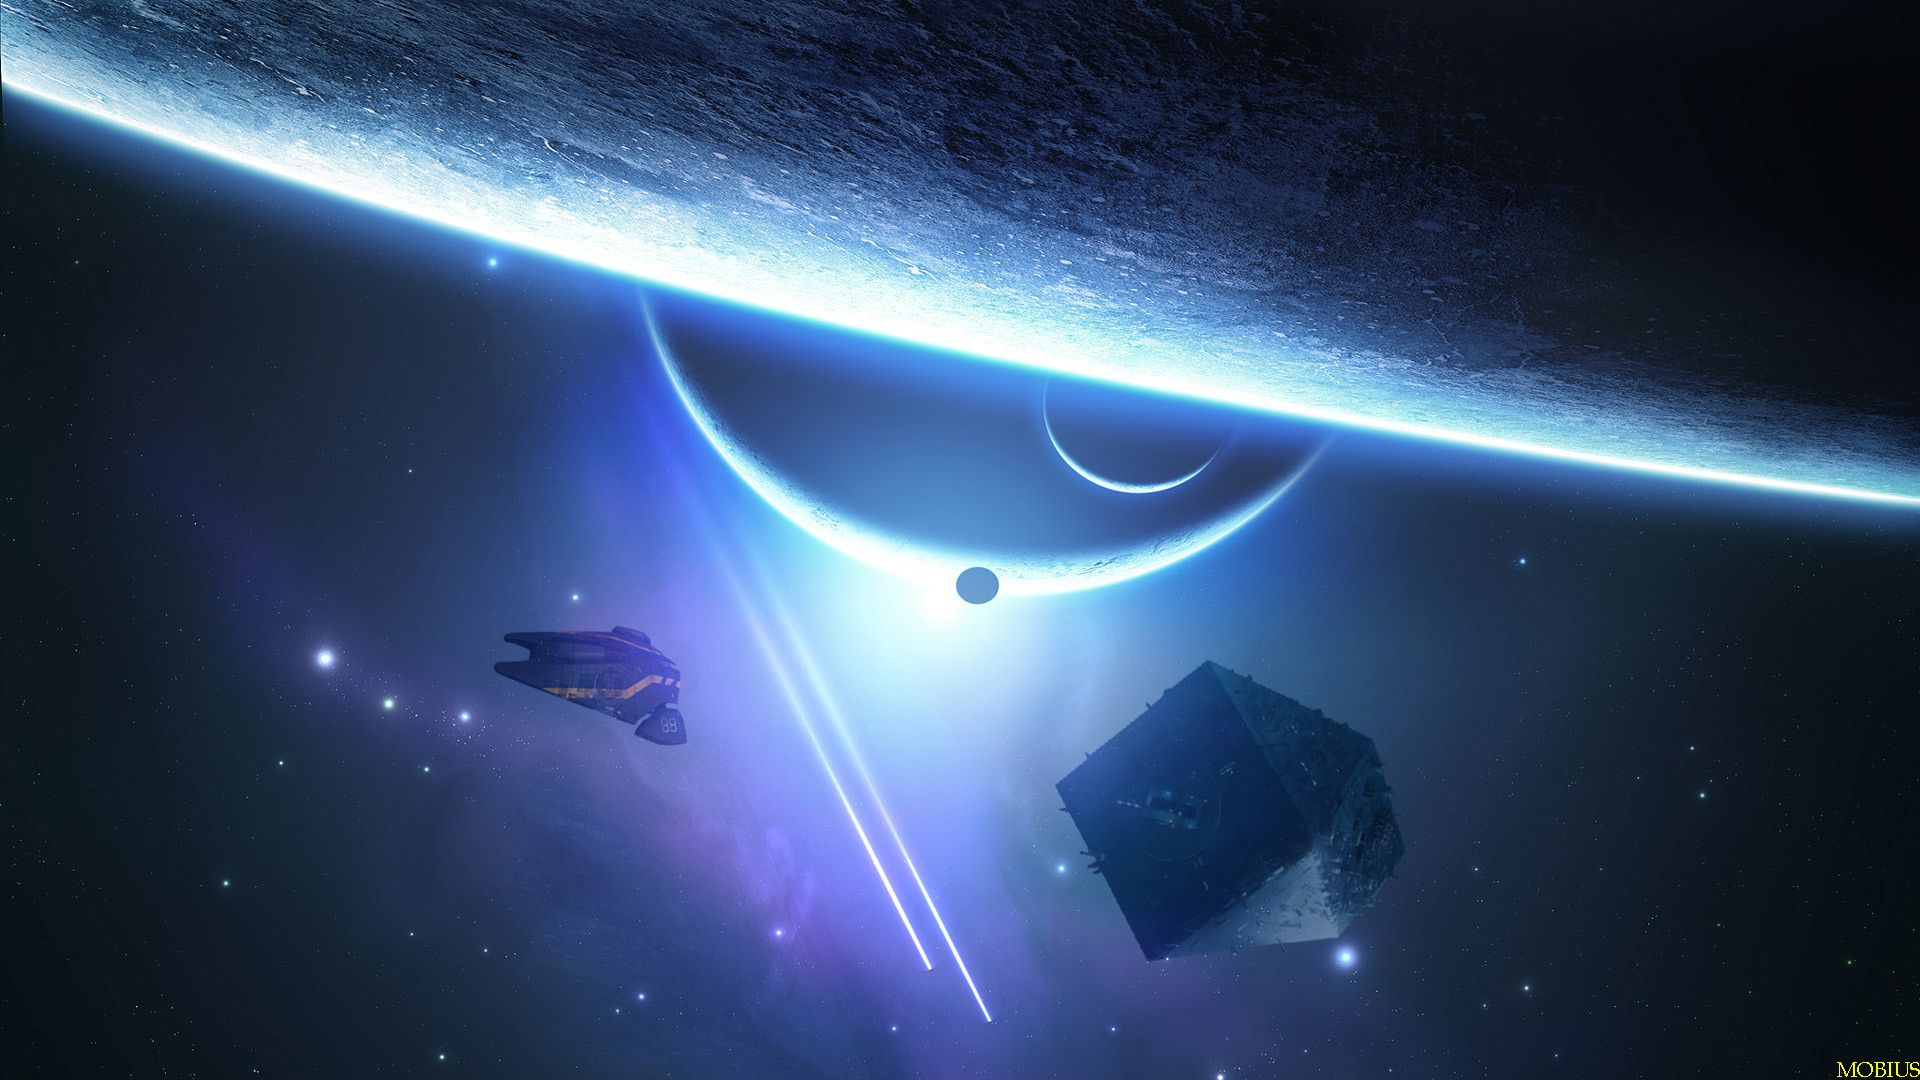 Elite Dangerous Picture Of The Day Planets Wallpaper Wallpaper Space Space Iphone Wallpaper